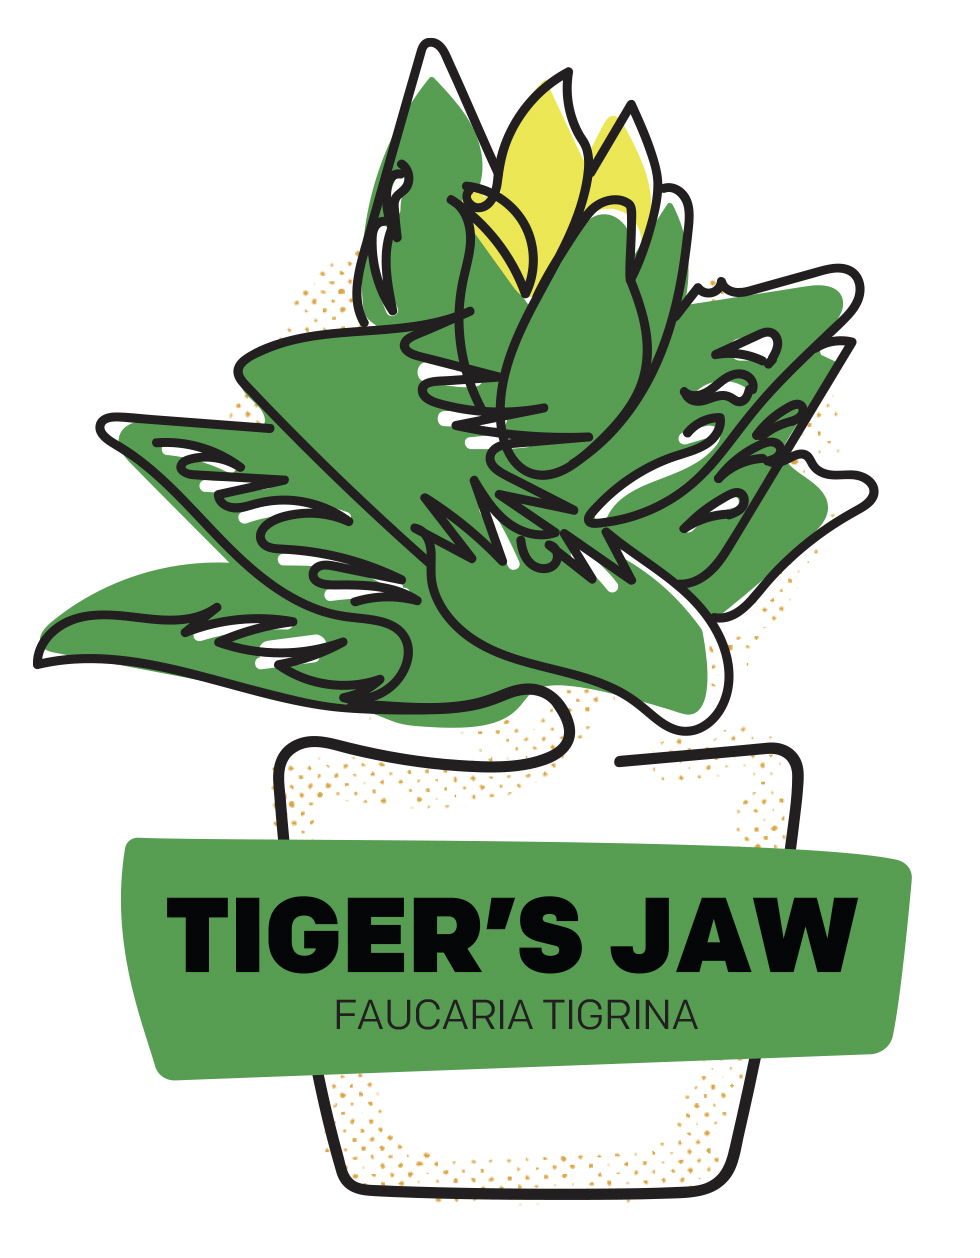 Tiger's Jaw